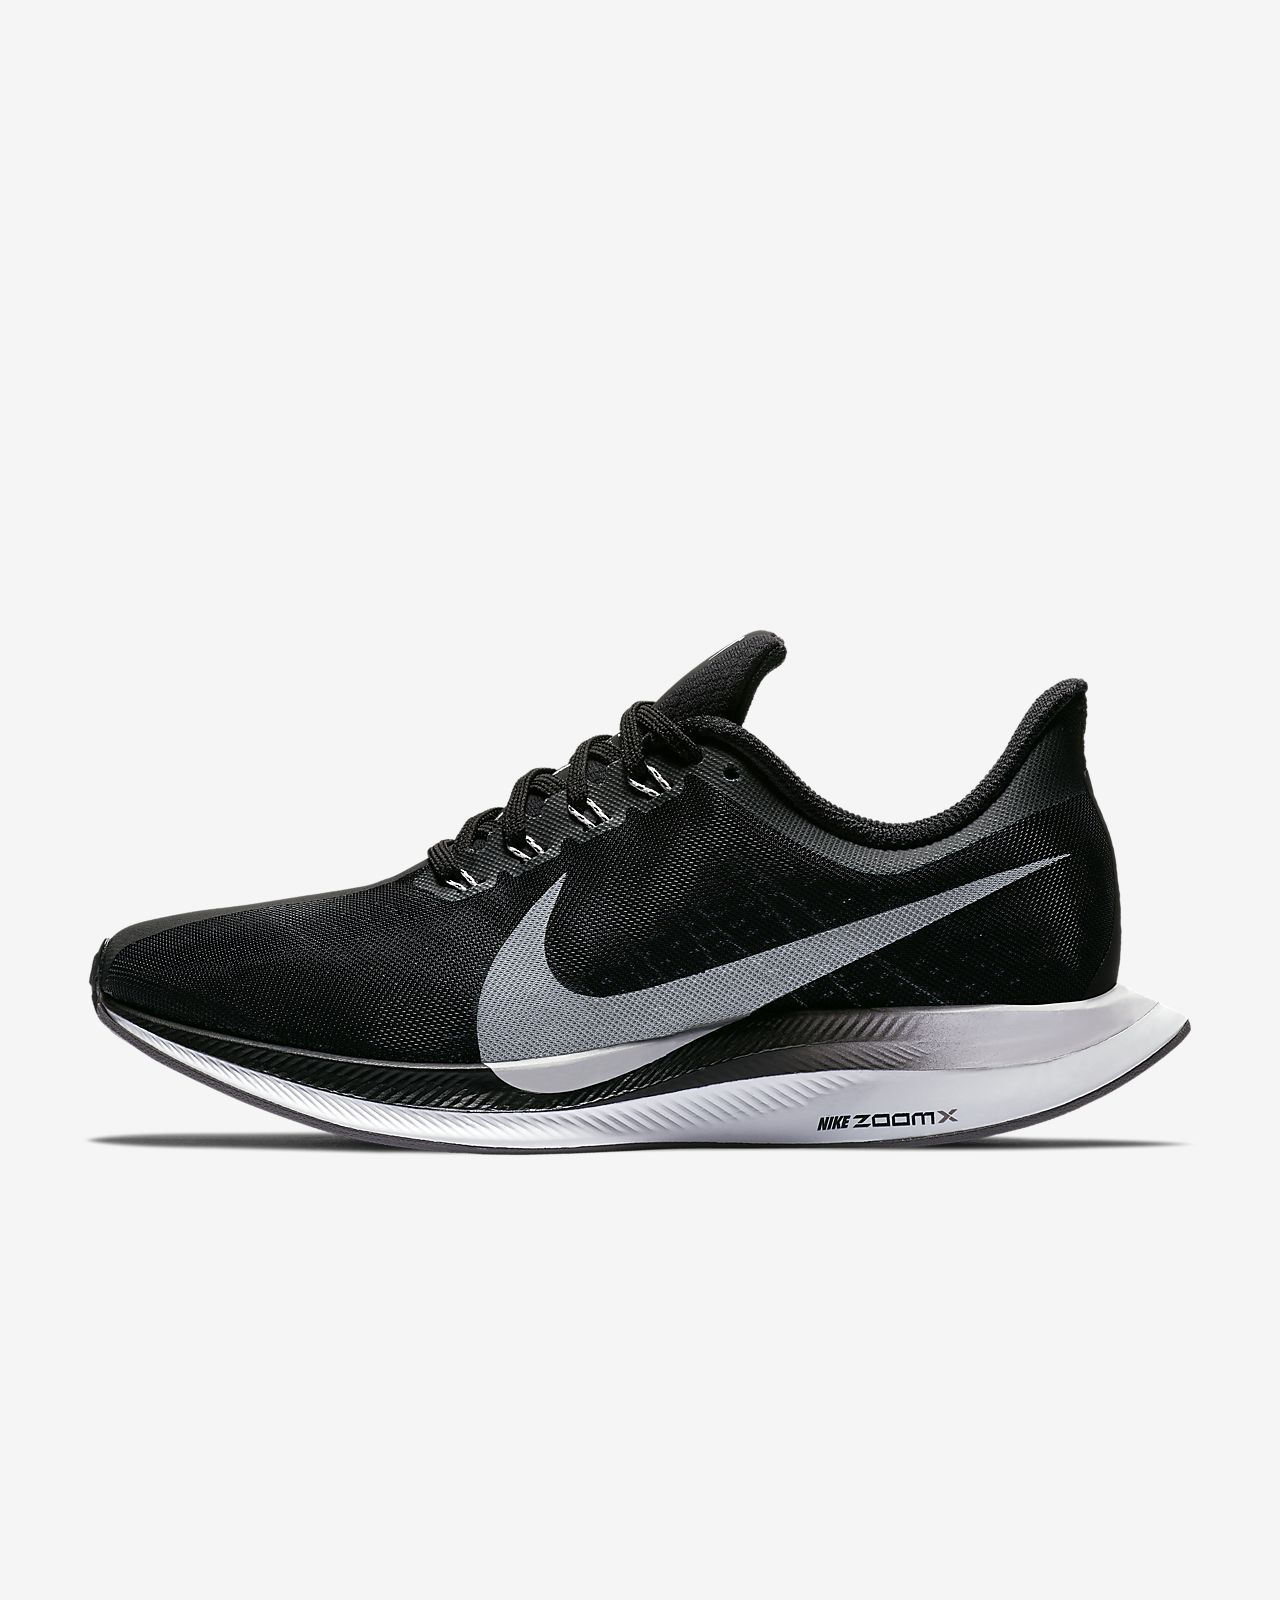 Go Faster Every Day in the All New Nike Zoom Pegasus 35 Turbo